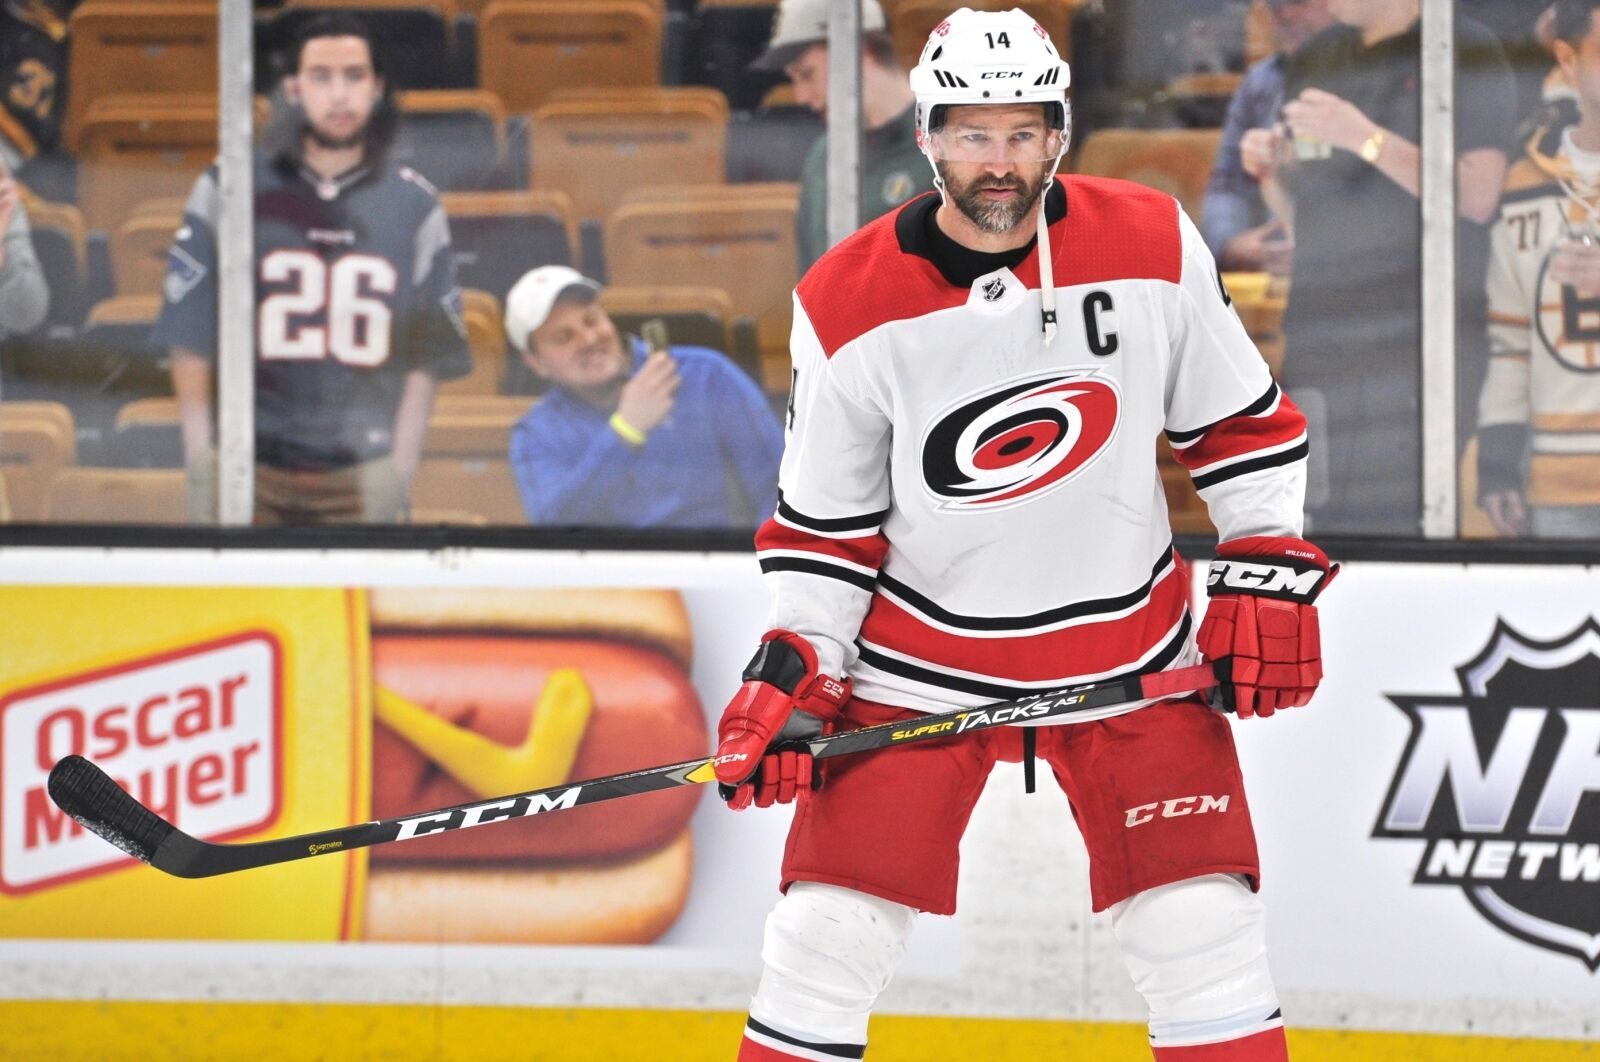 Carolina Hurricanes: What's going on with Justin Williams?